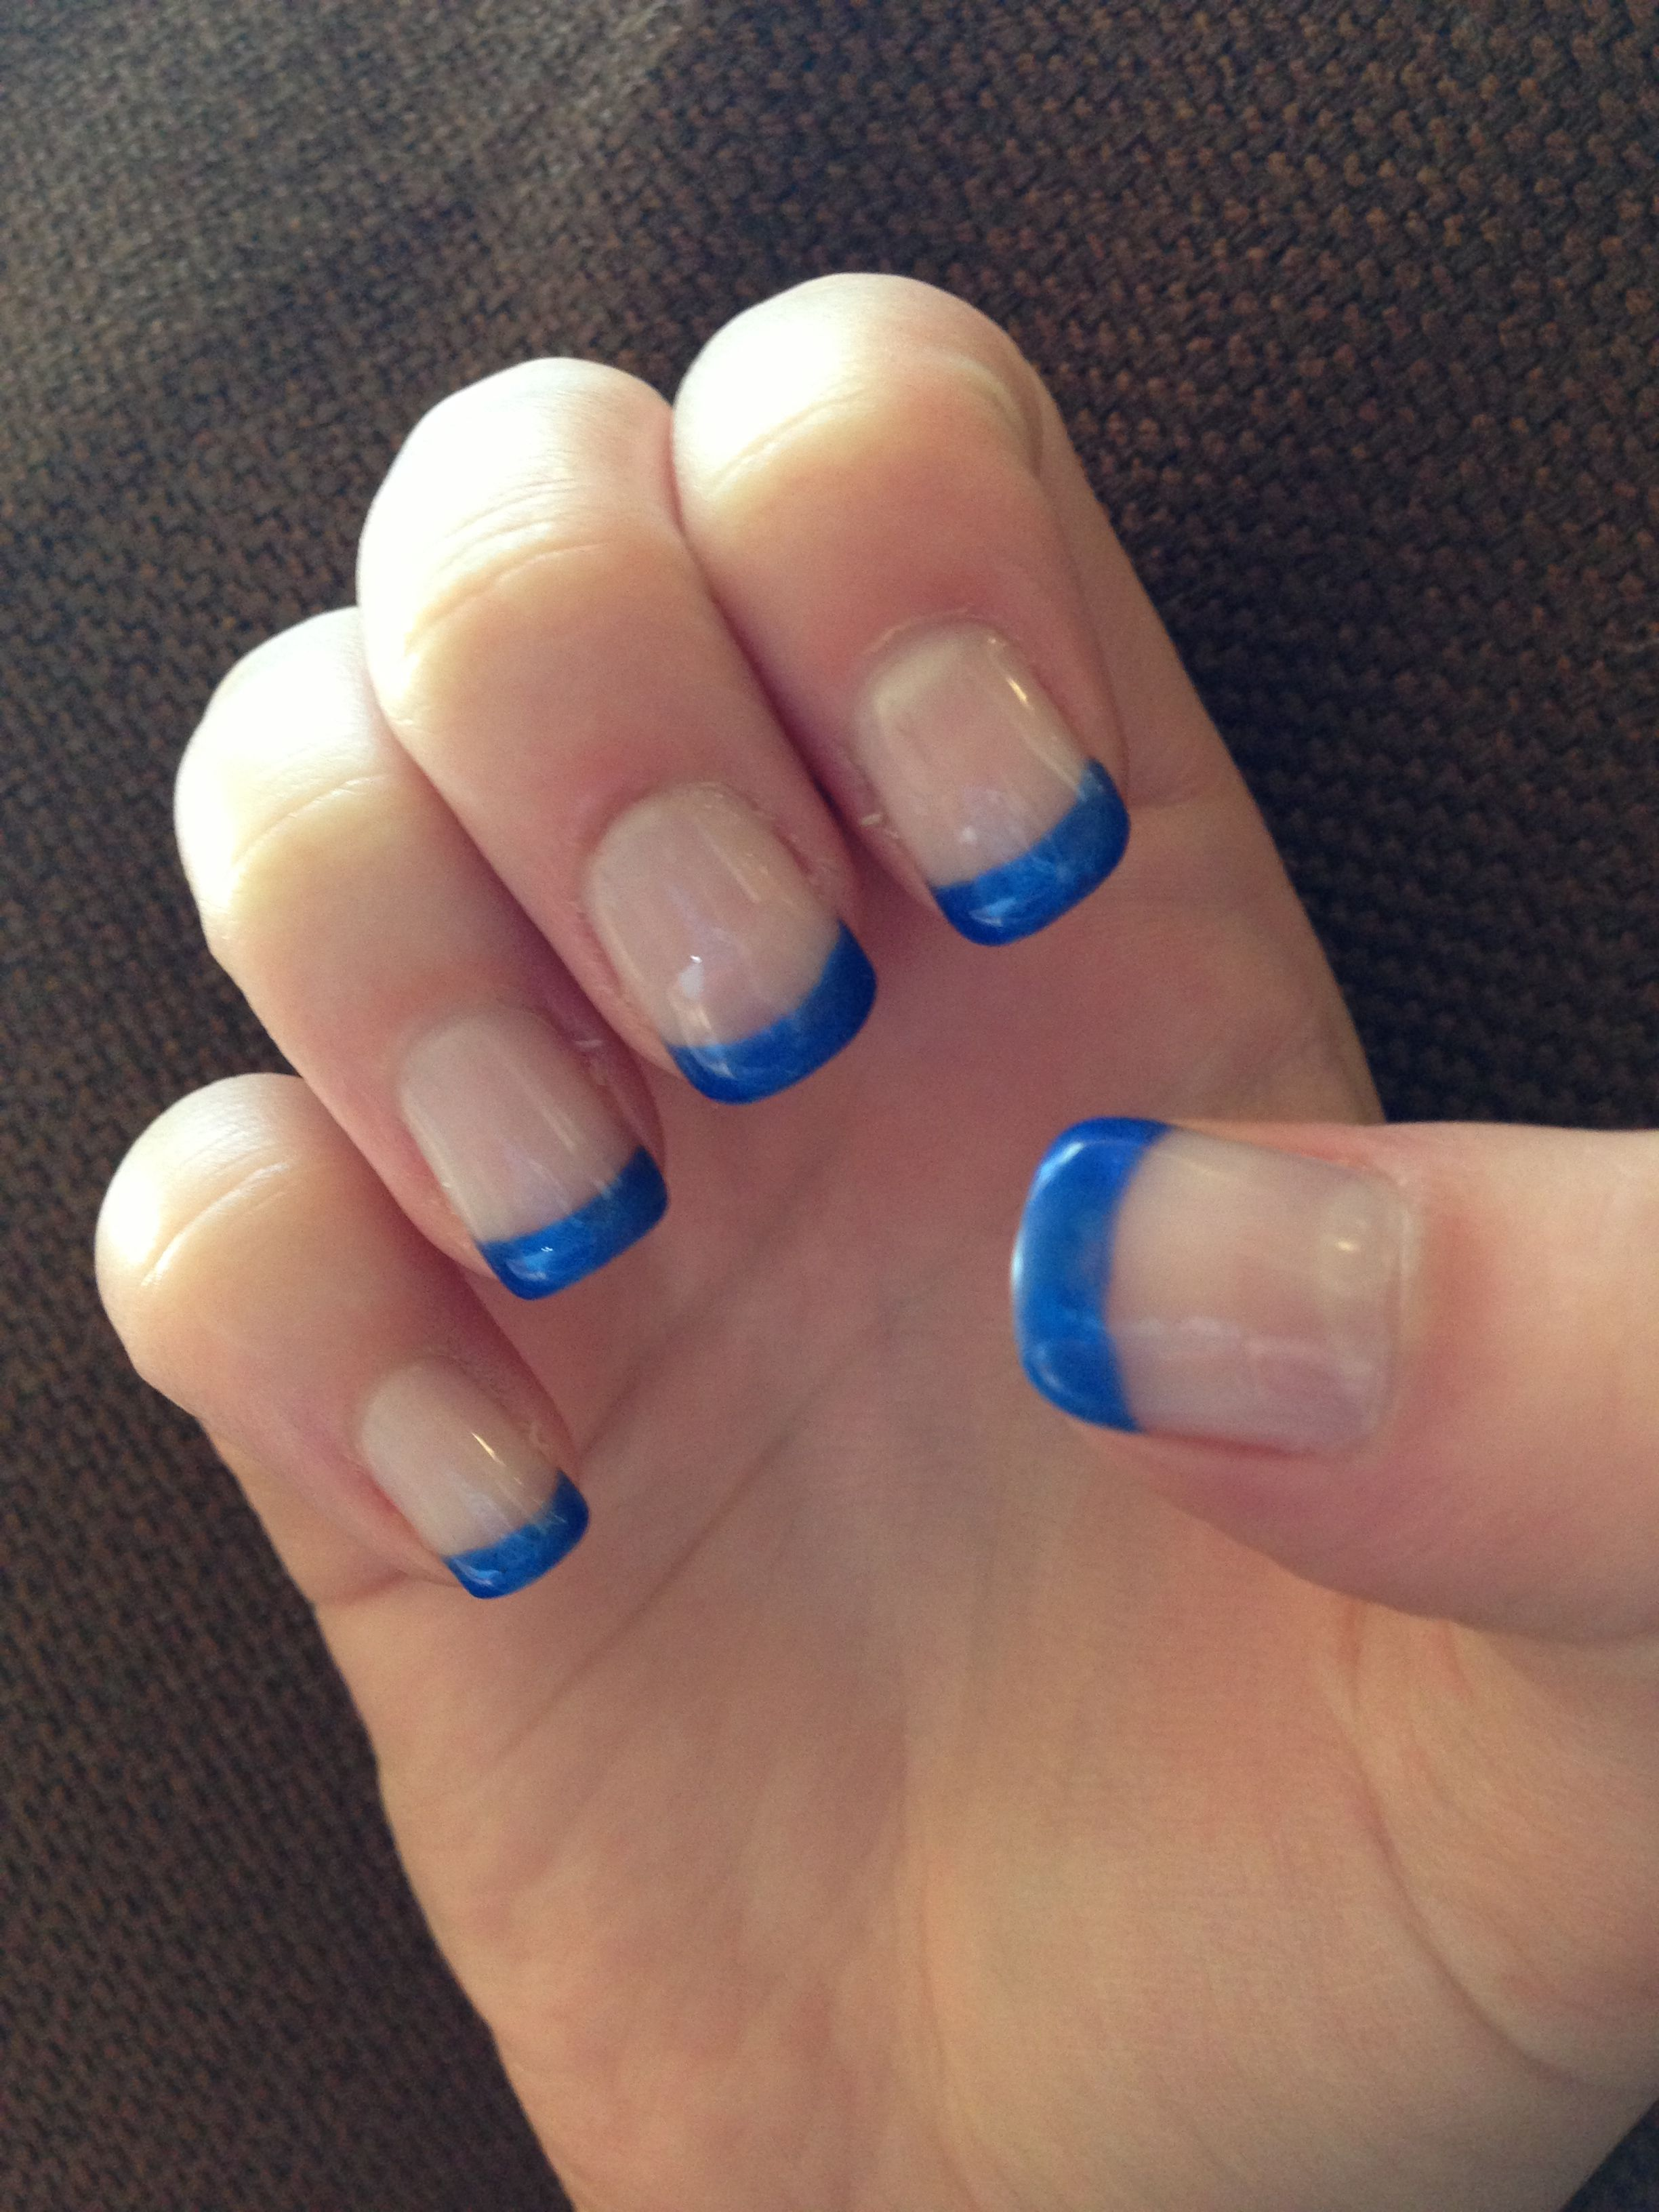 French manicure with dark blue tips! | Nails | Pinterest | Manicure ...